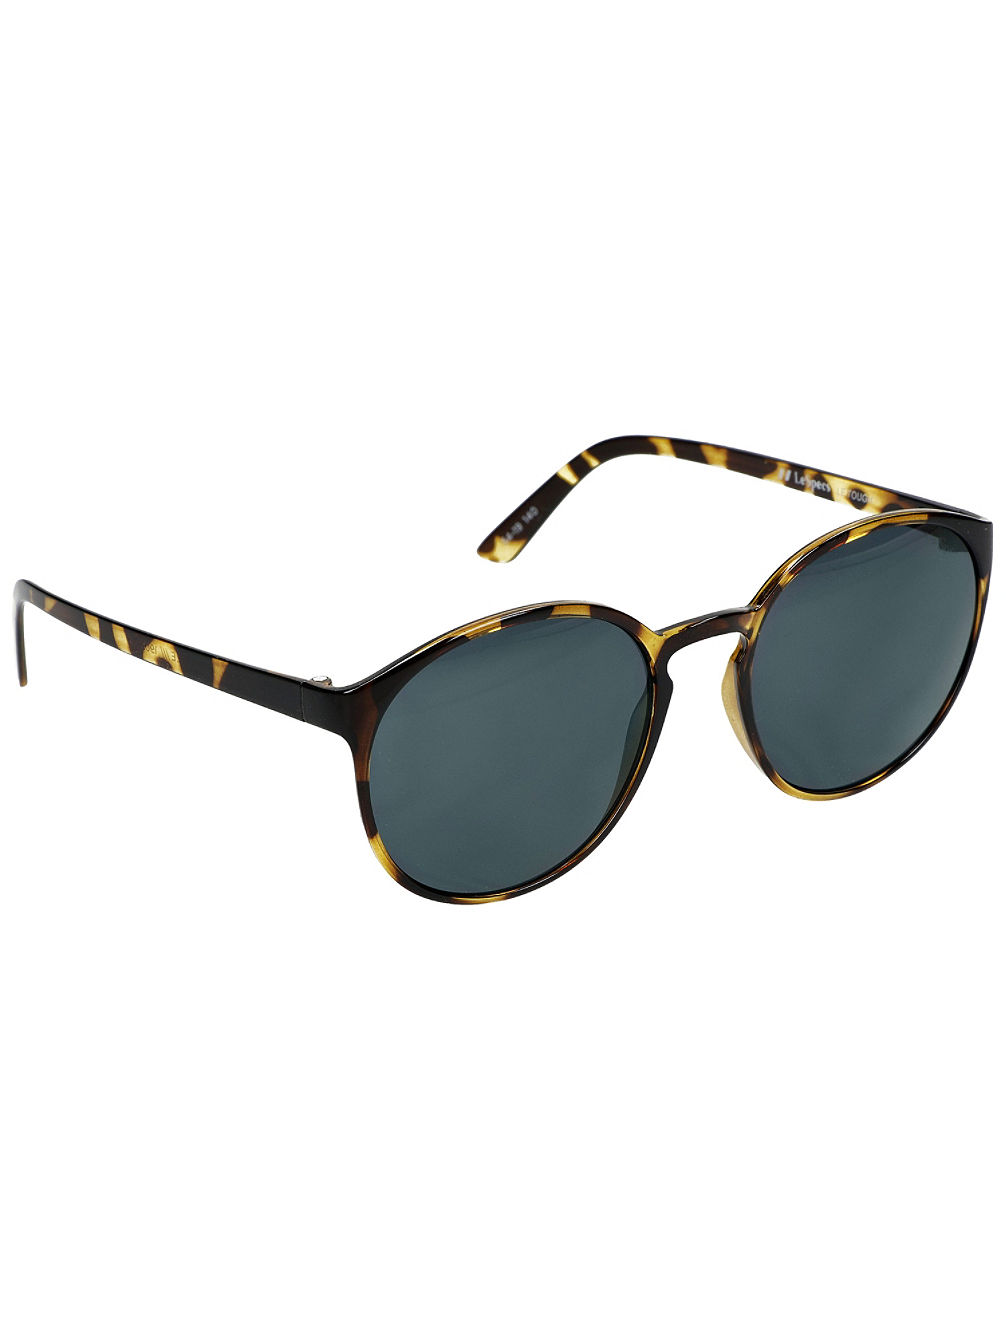 Swizzle Syrup Tortoise Sonnenbrille